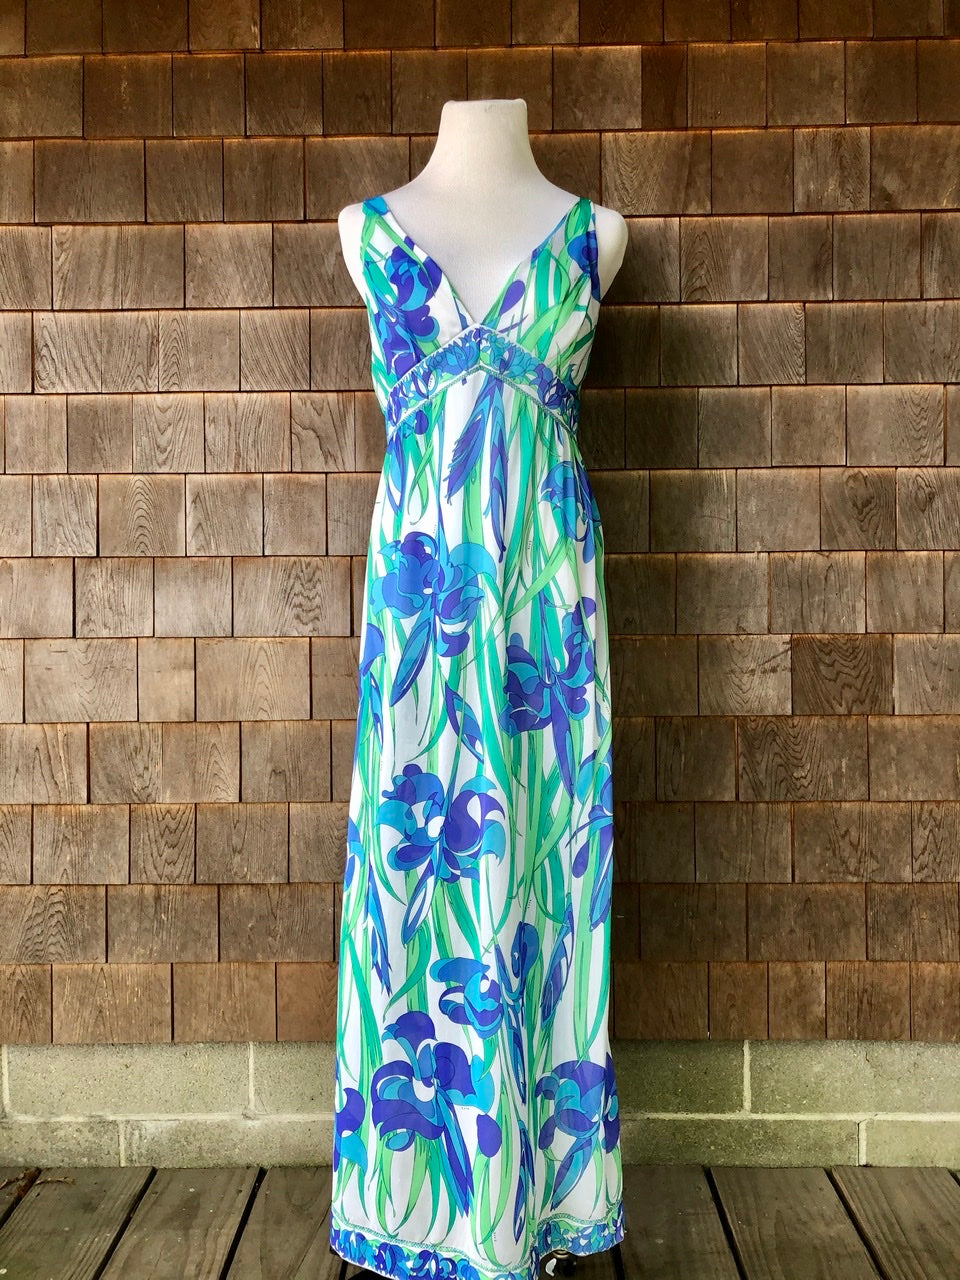 Emilio Pucci Slip Dress Maxi Blue & Green Iris Print